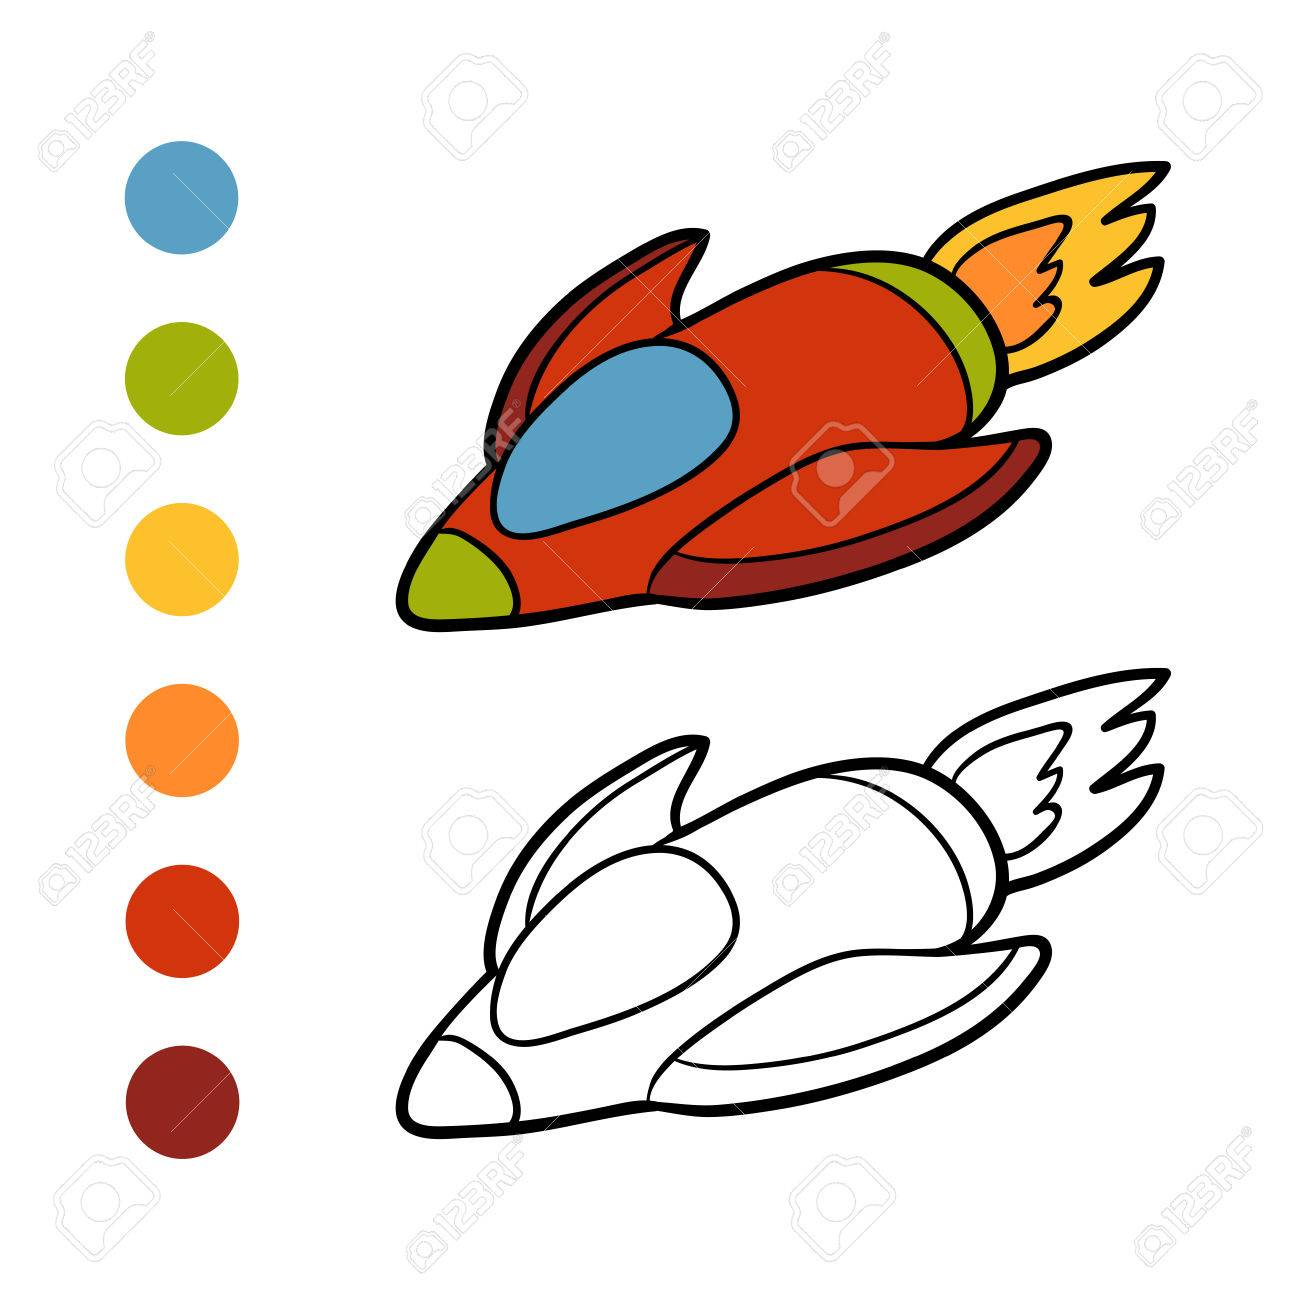 Fine Fish Coloring Book Frieze - Drawing Coloring - androidharga.info